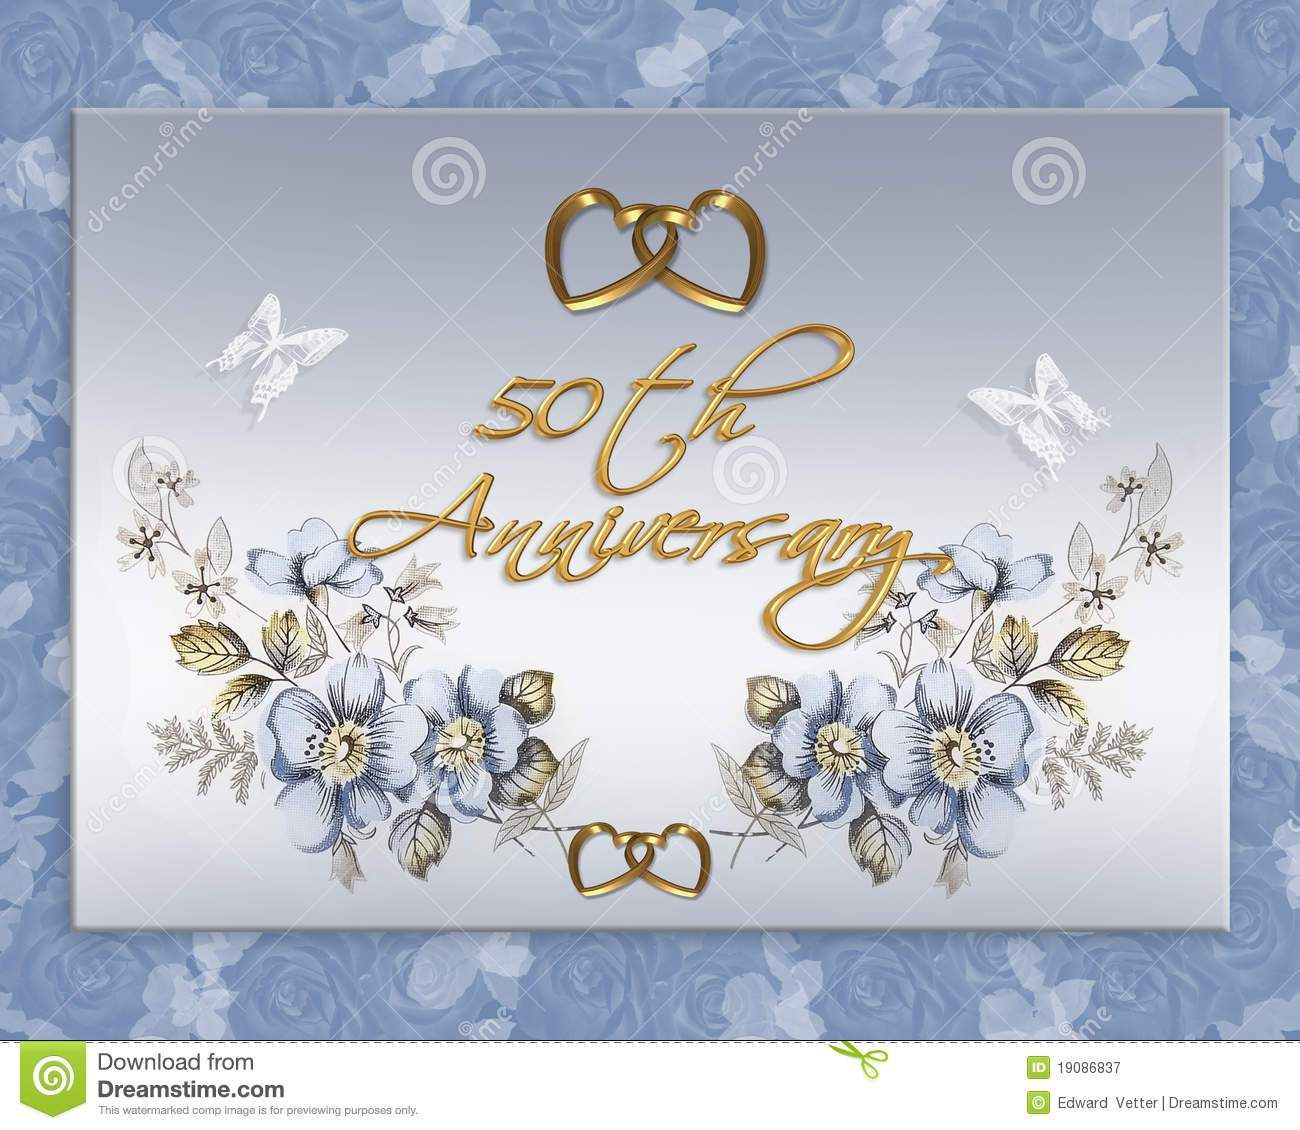 50th anniversary sayings 50th wedding anniversary quotes in spanish collection